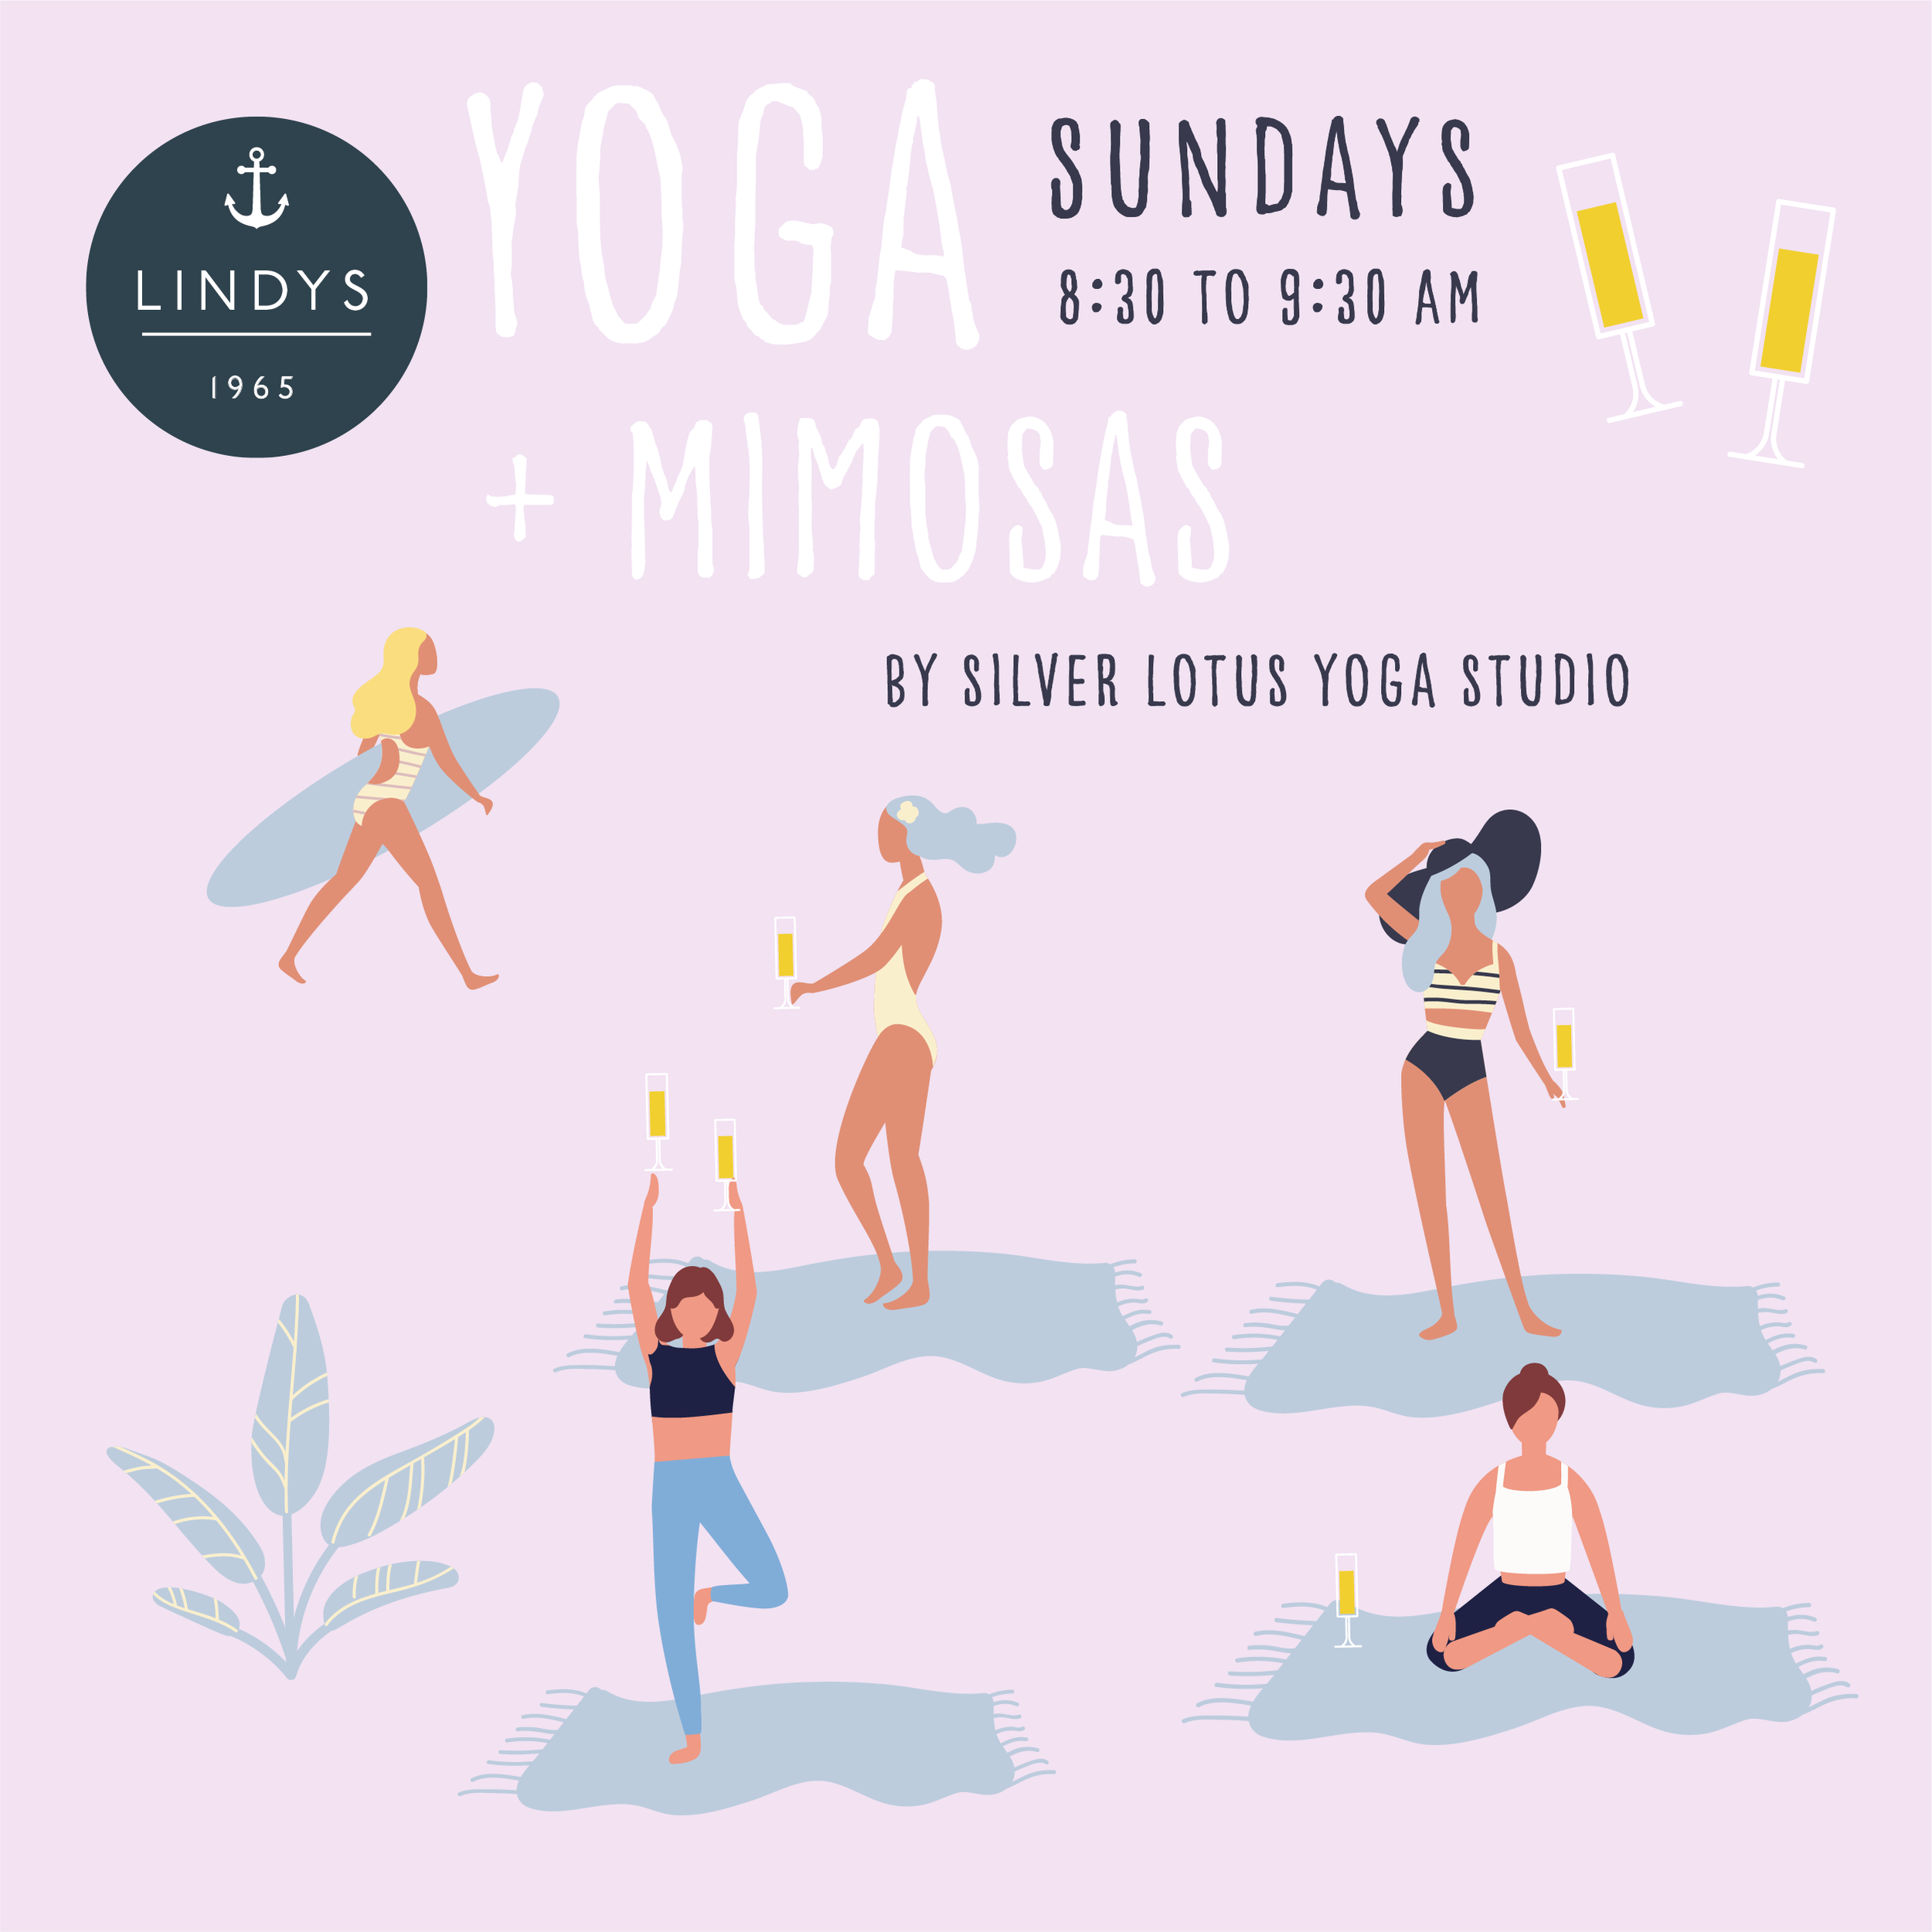 $15 per person - No sign up needed, just meet us on the beach at Lindy's! Beach towels provided, please bring a yoga mat if you'd prefer.$15 per personCheers Yogis!